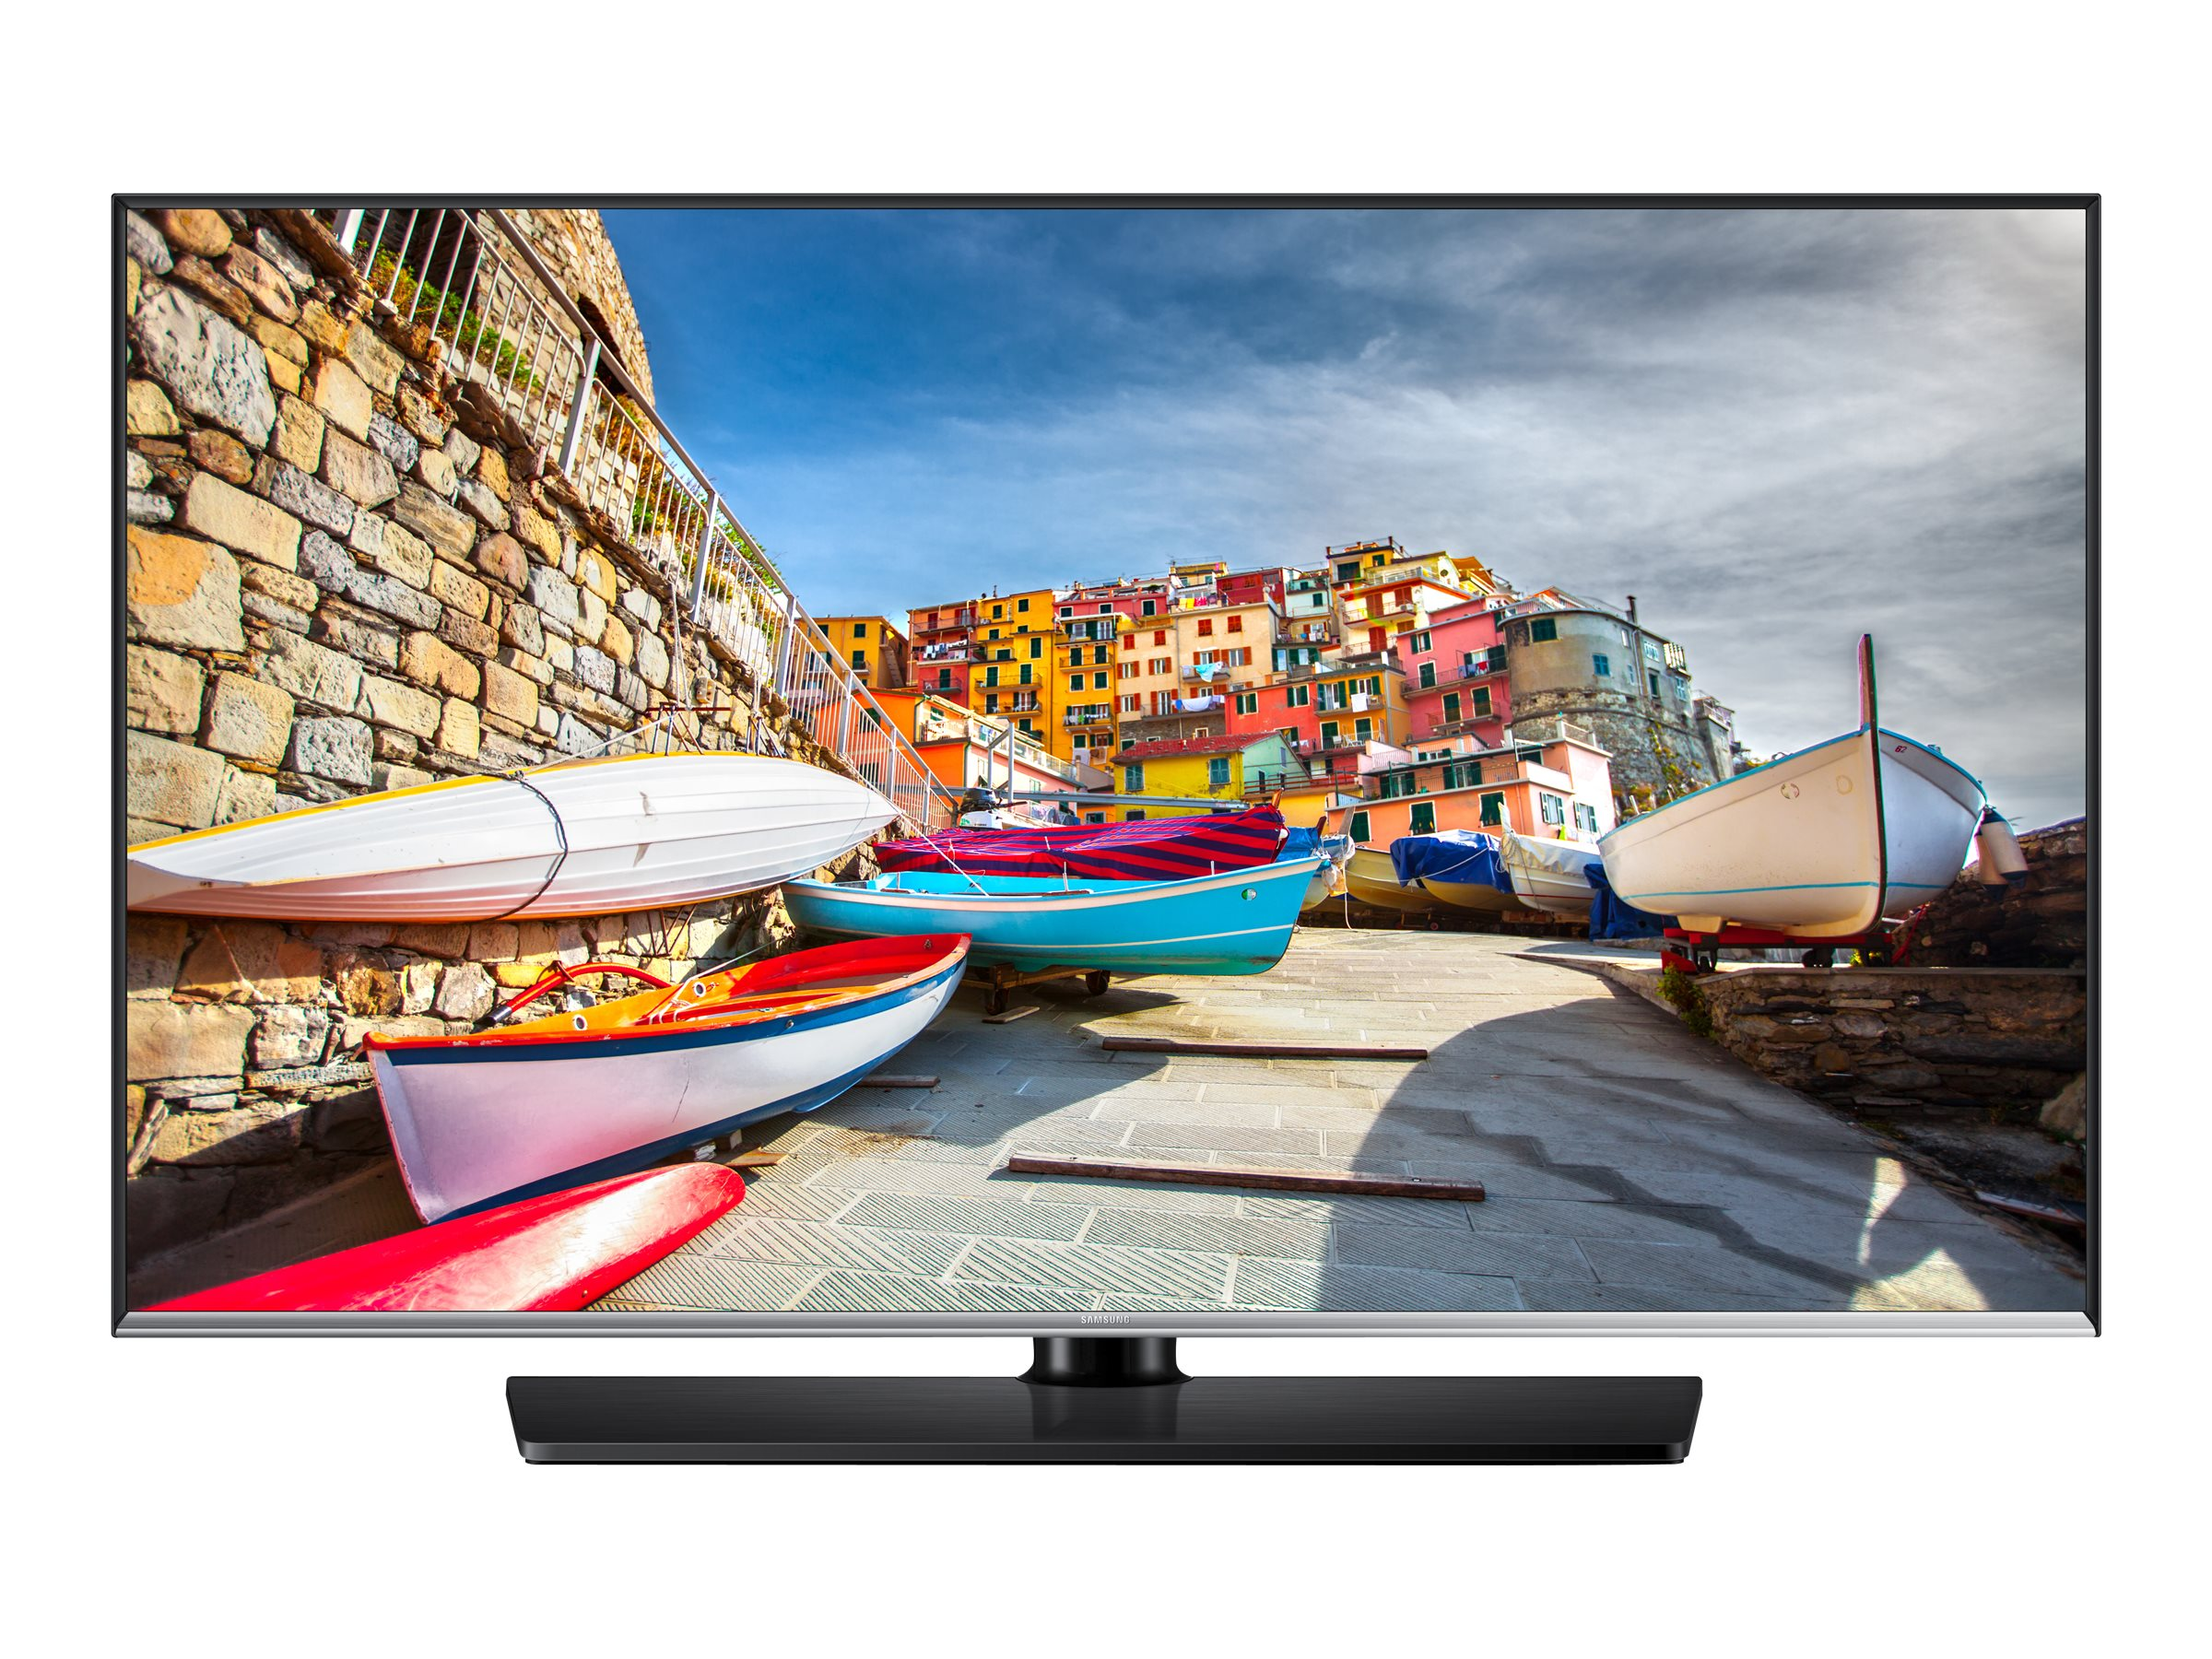 Samsung 55 HE478 Full HD LED-LCD Hospitality TV, Black